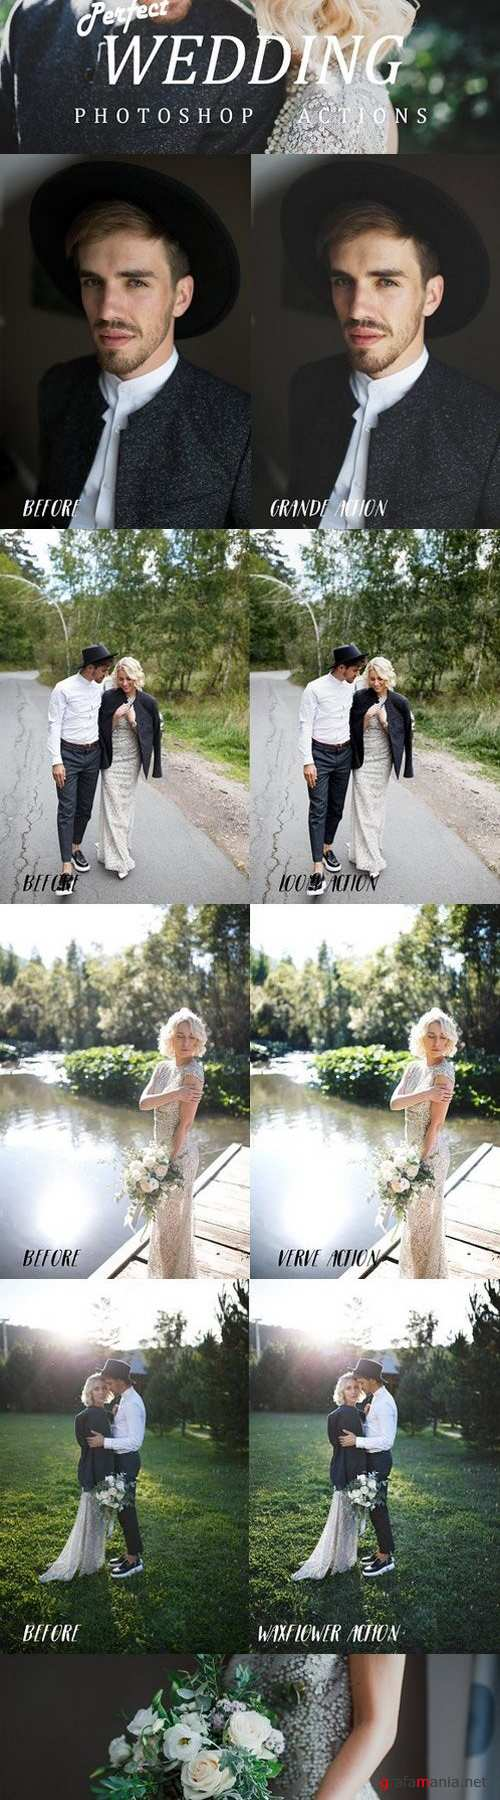 Photoshop wedding actions 1436867